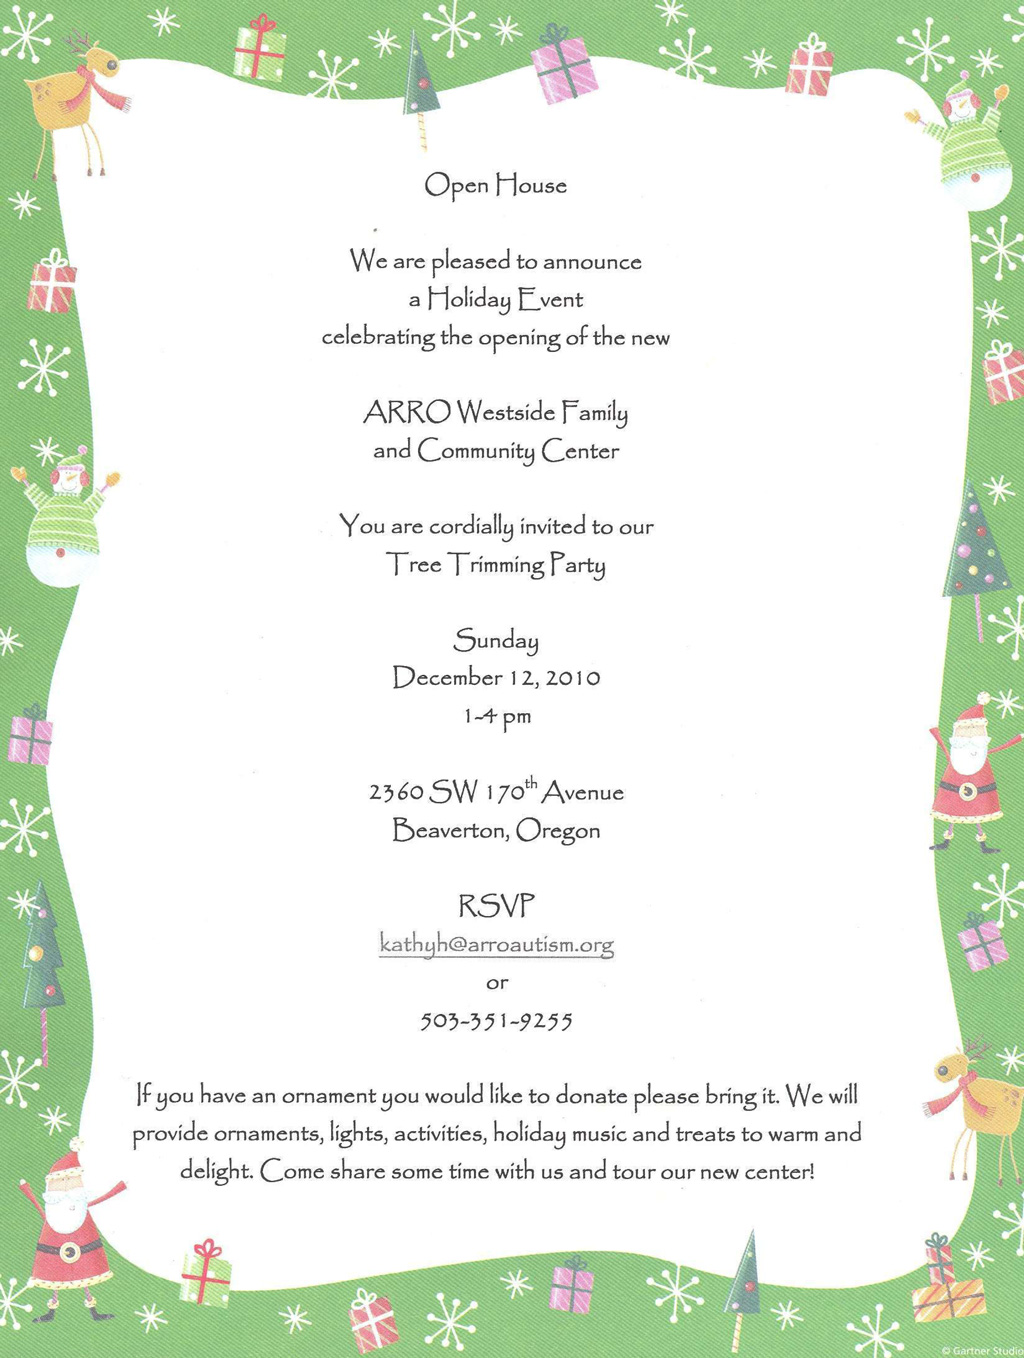 Graduation Open House Invitation Wording could be nice ideas for your invitation template